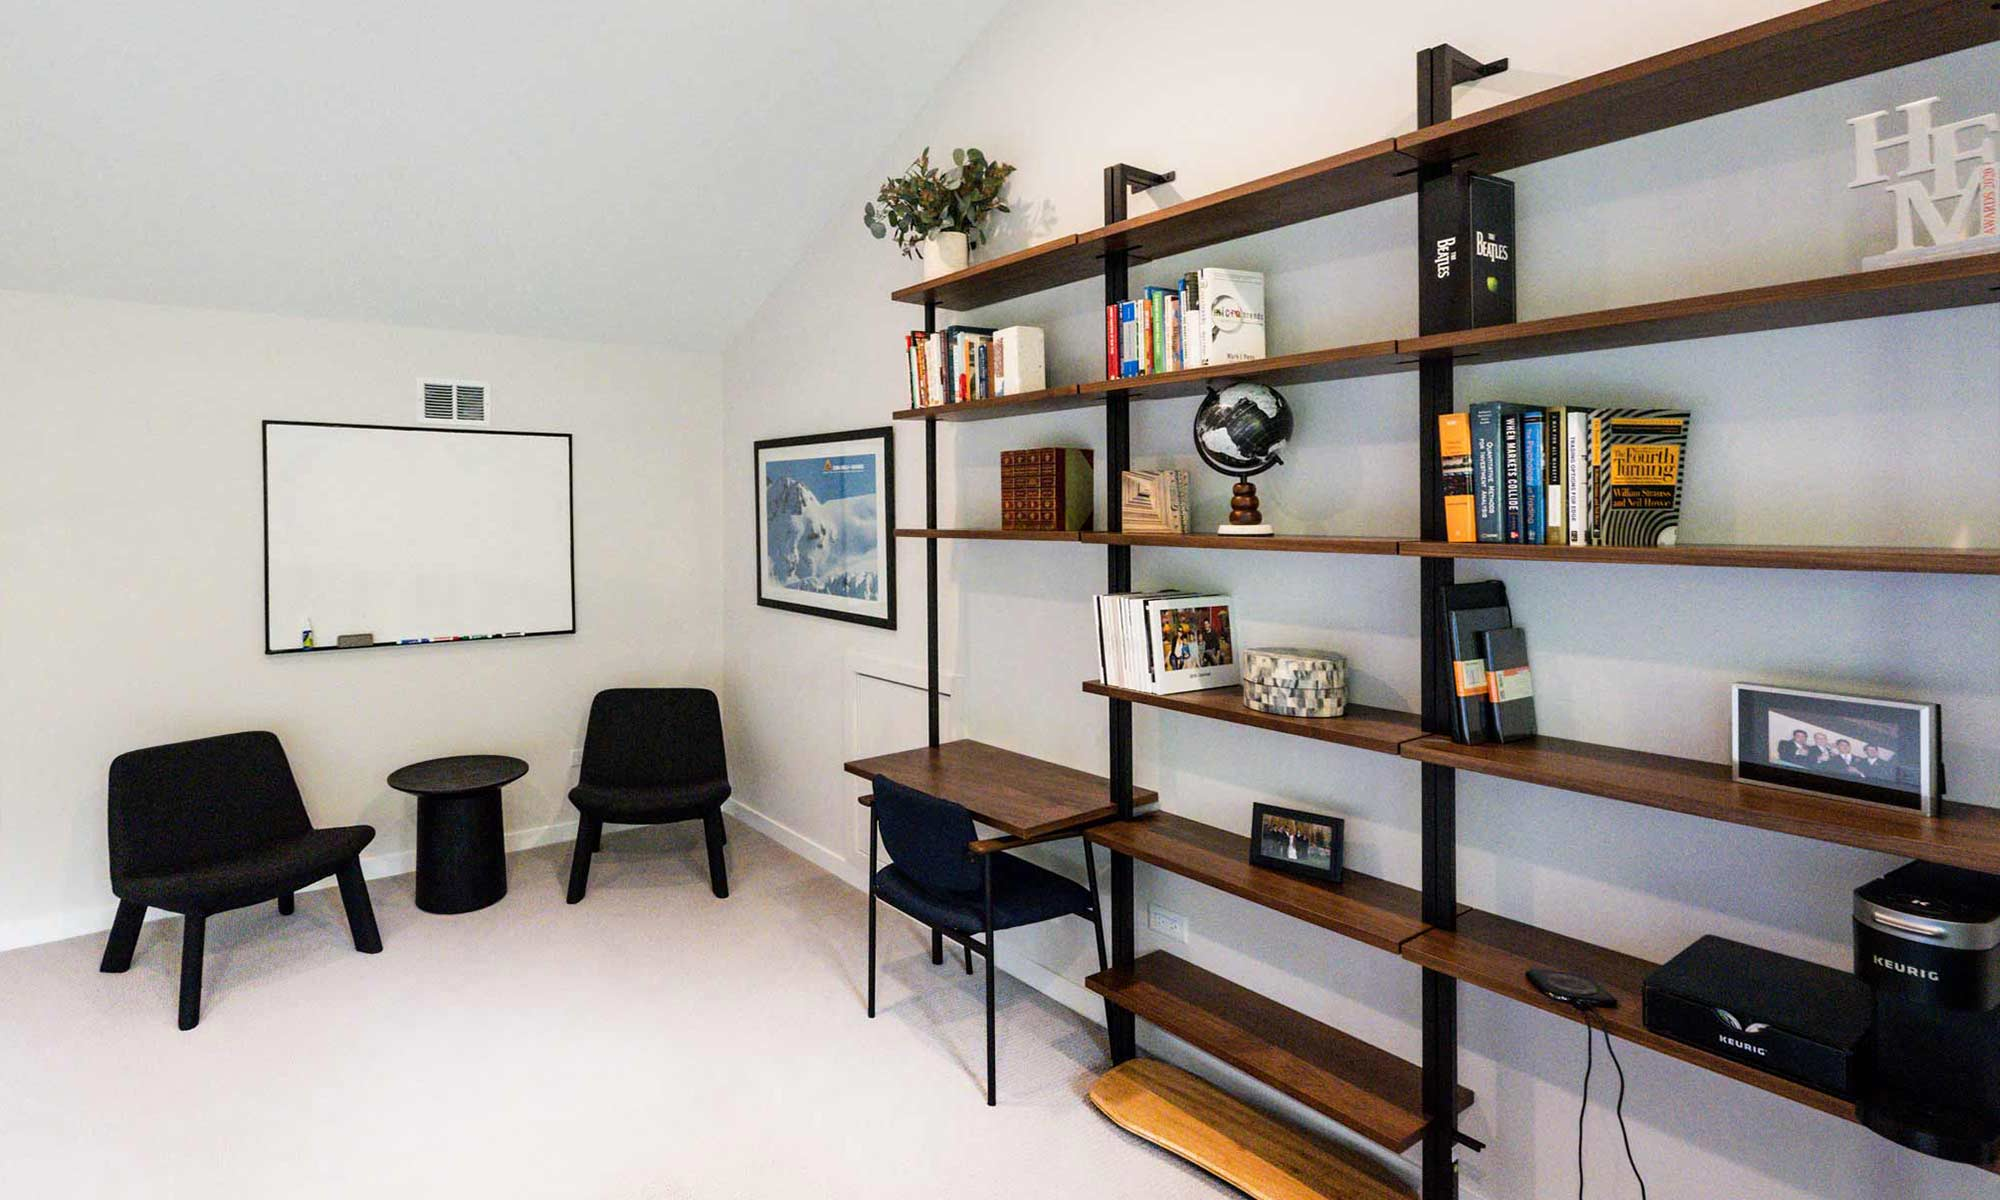 interior view of modern shelves in home office addition